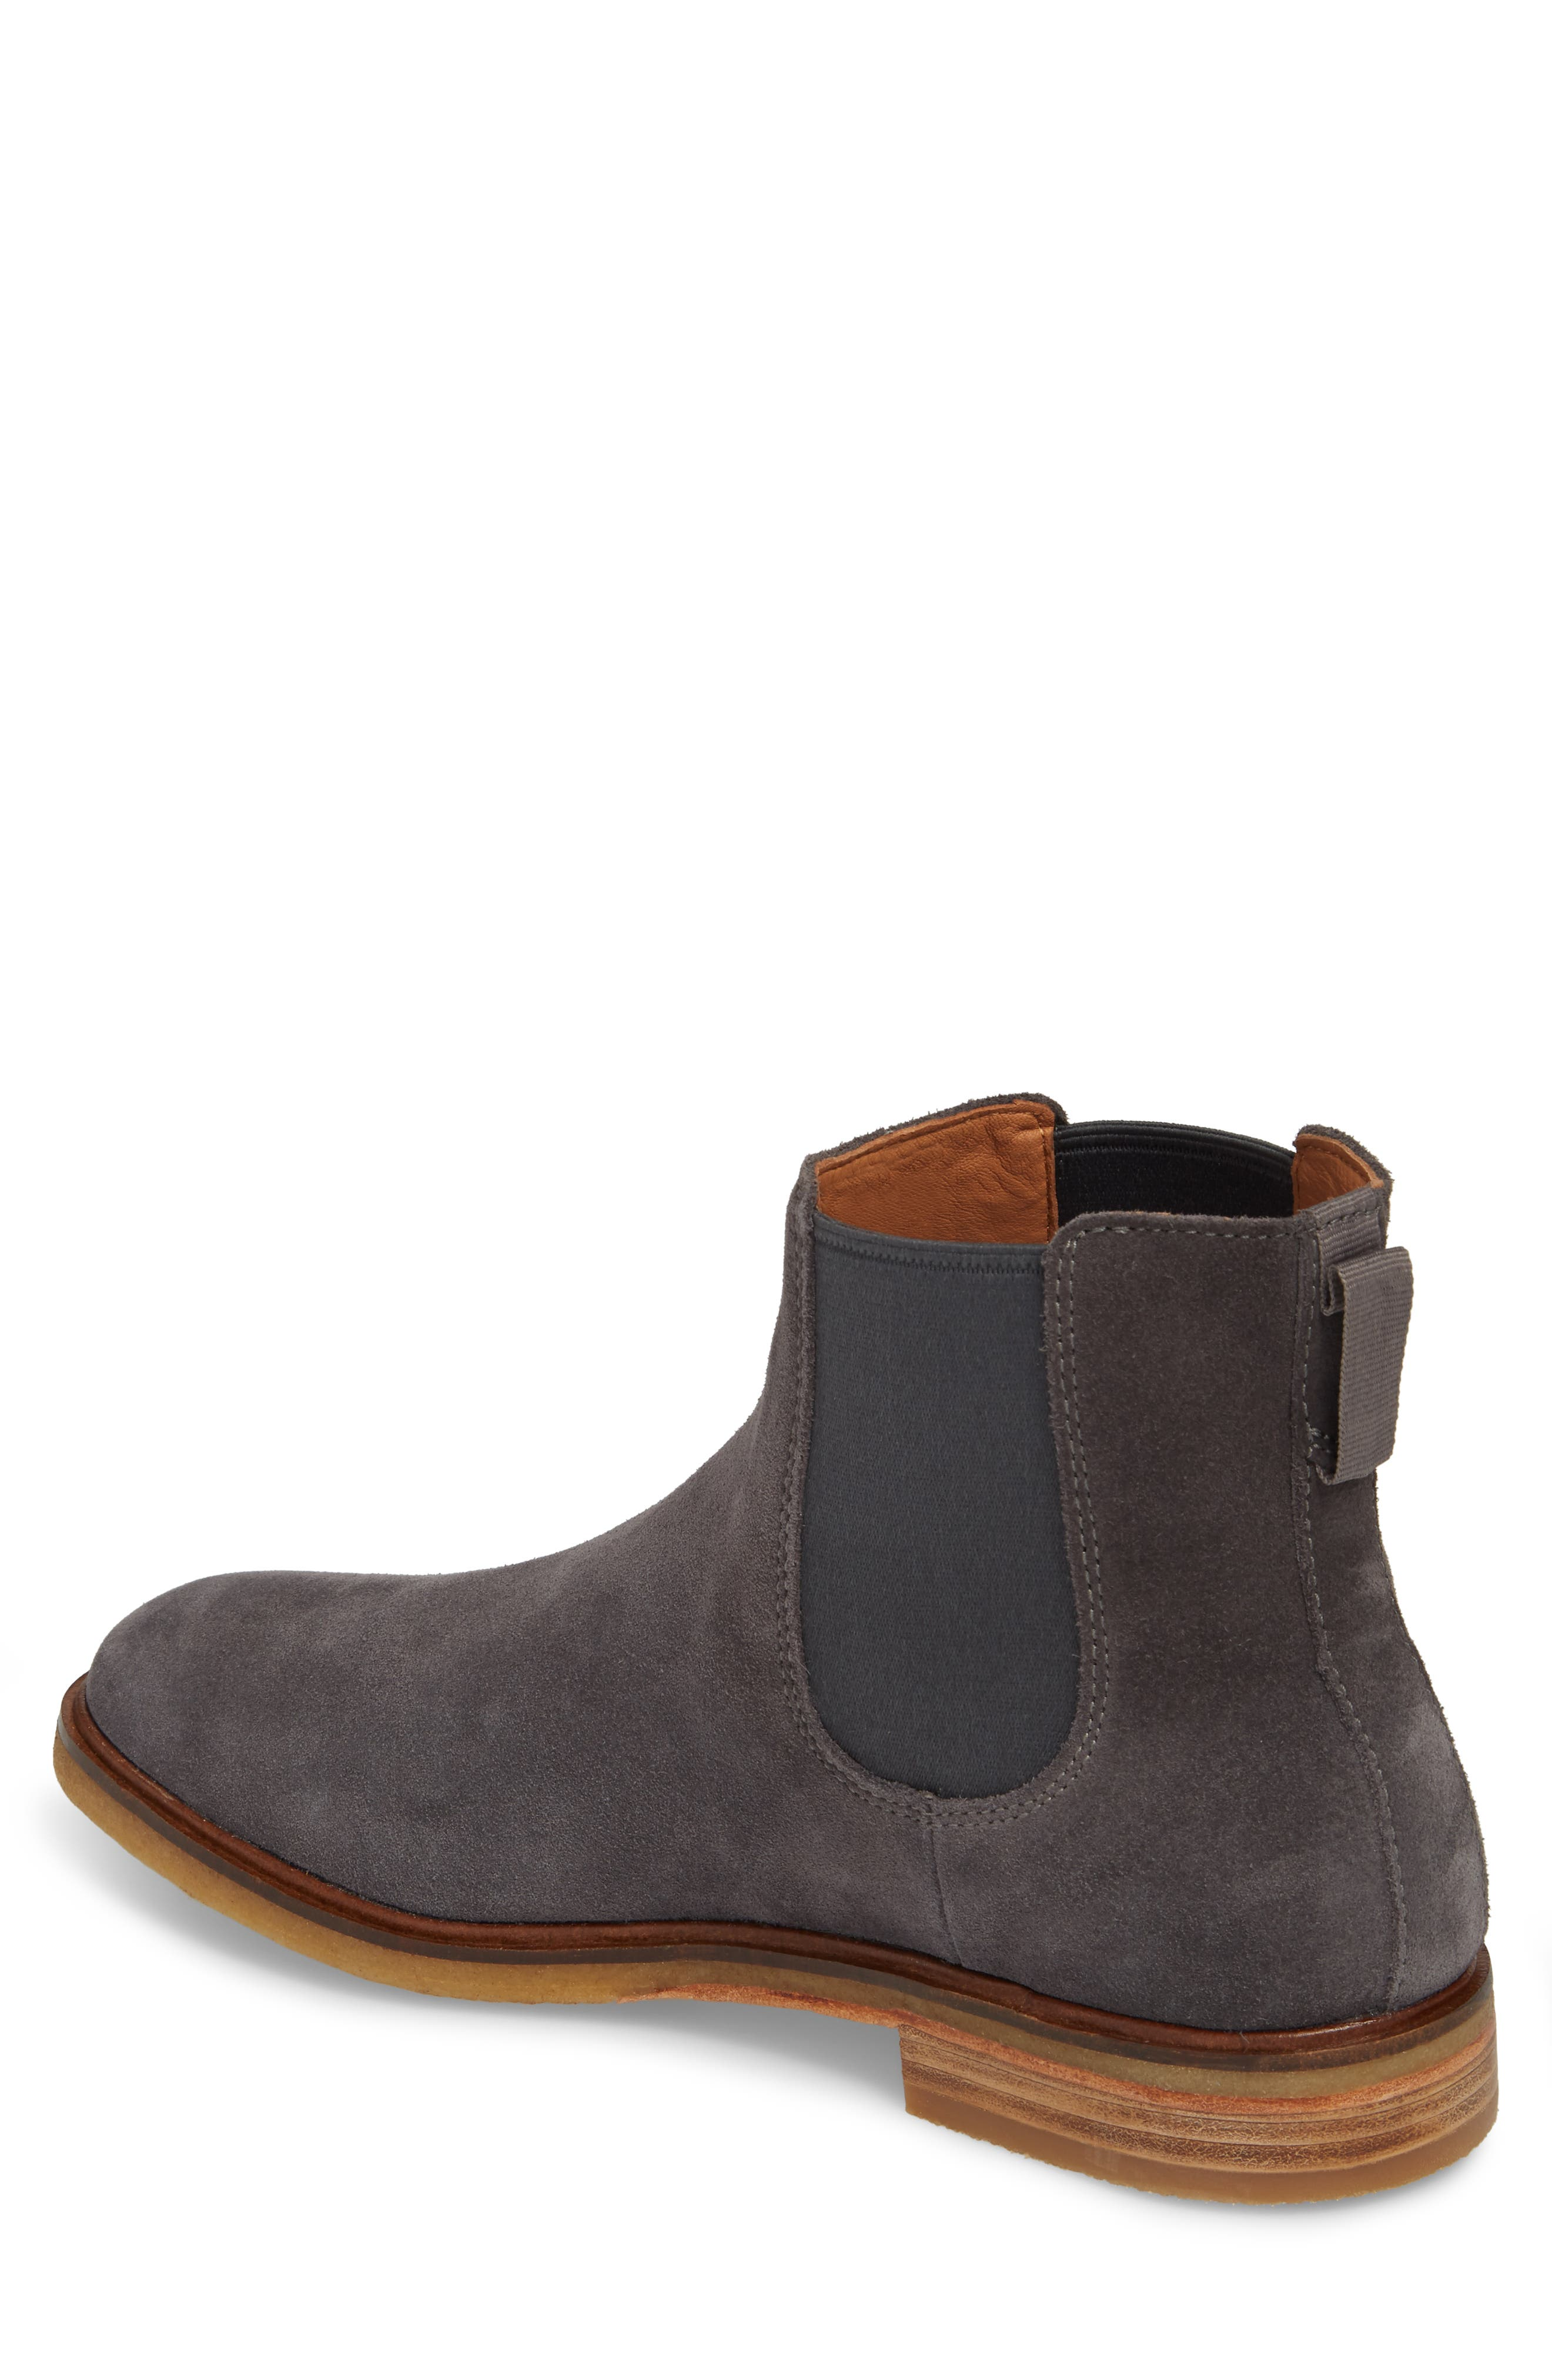 Clarkdale Chelsea Boot,                             Alternate thumbnail 2, color,                             Grey Suede